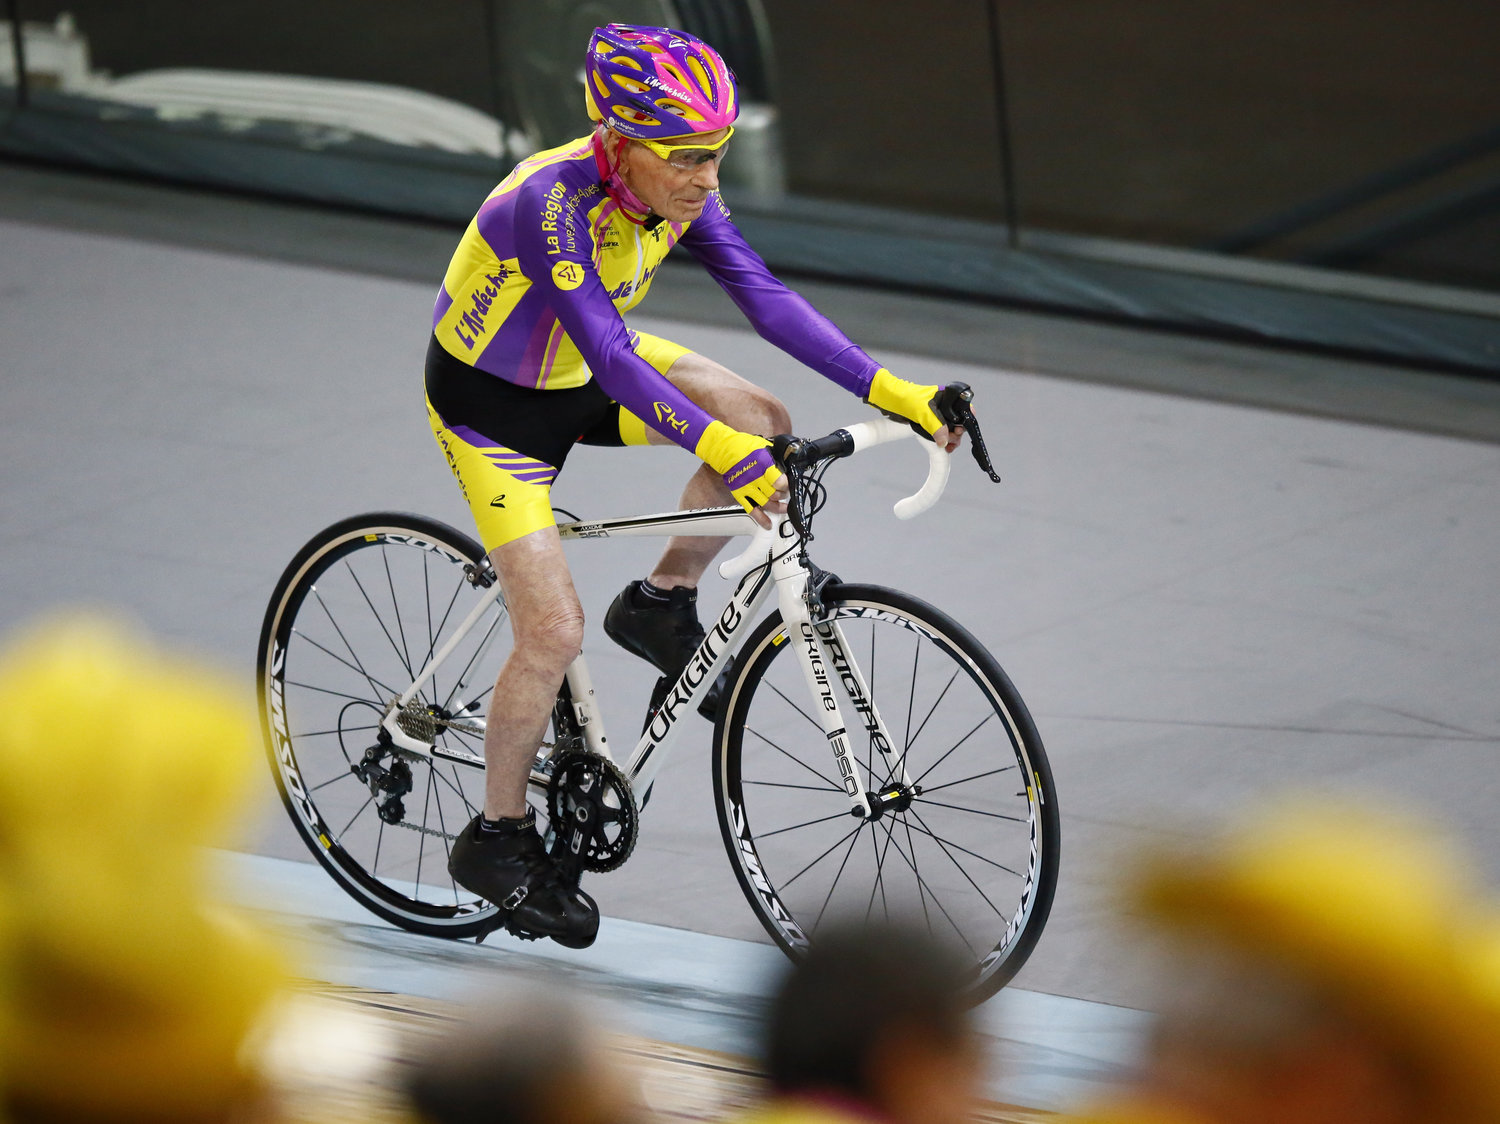 Robert Marchand, 105, set a world record at the velodrome of Saint-Quentin en Yvelines